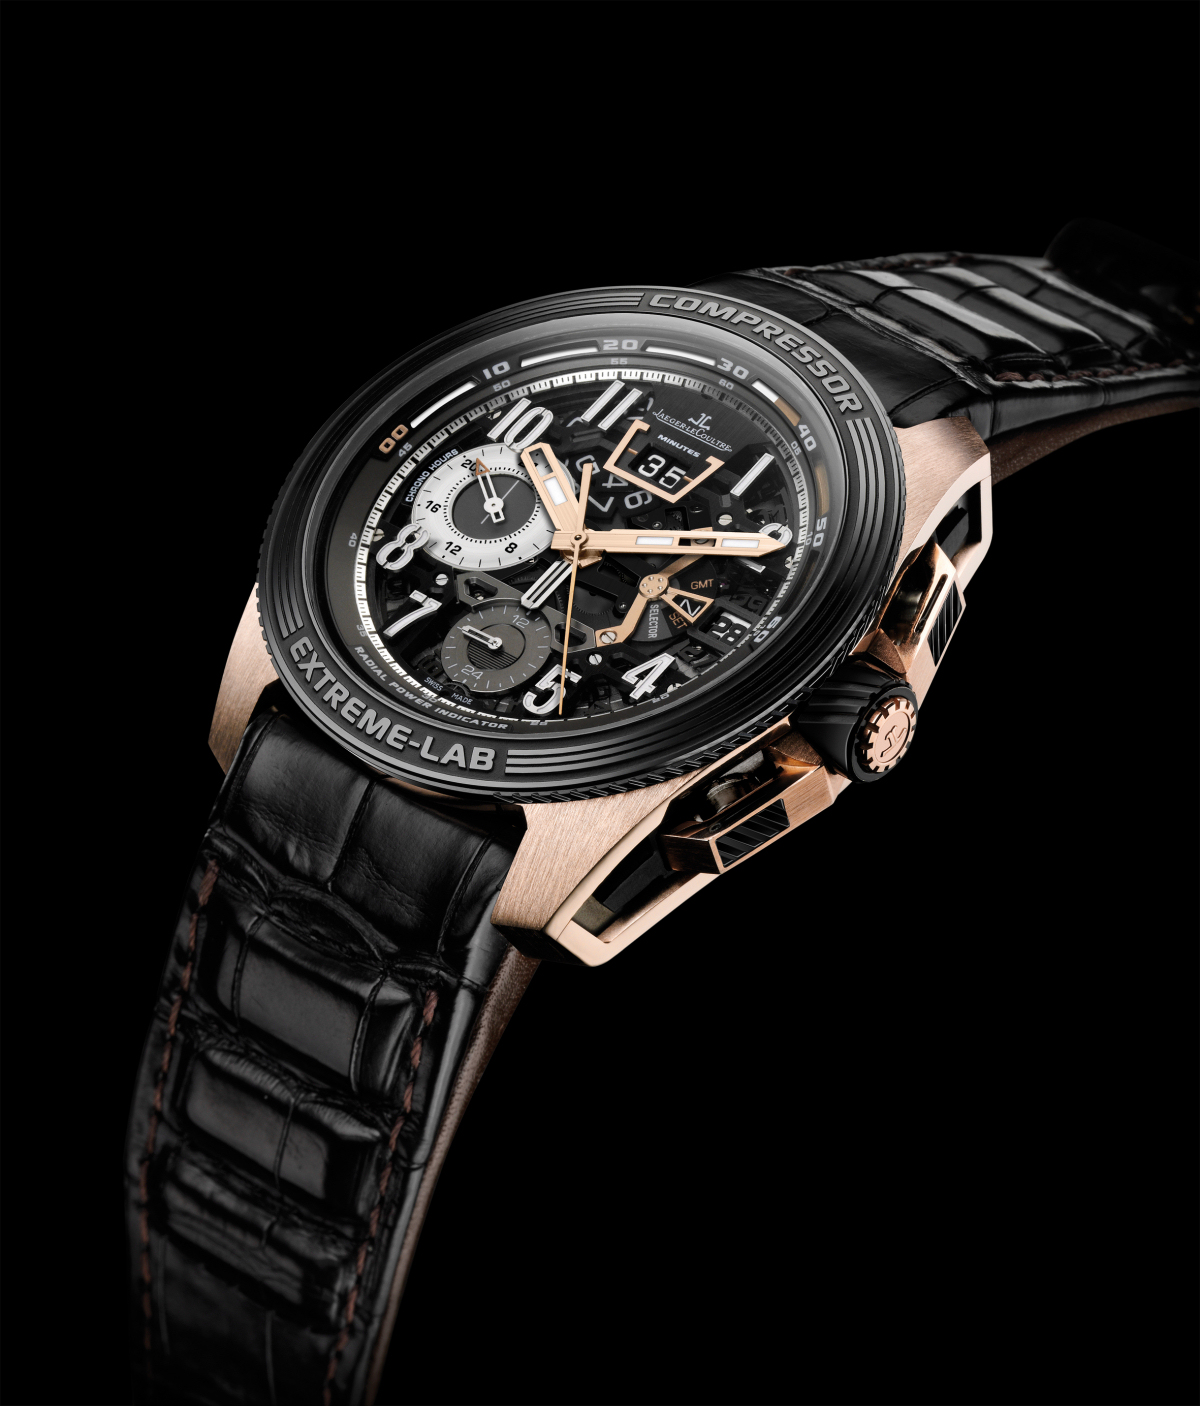 Jaeger LeCoultre's Master Compressor Extreme LAB-2